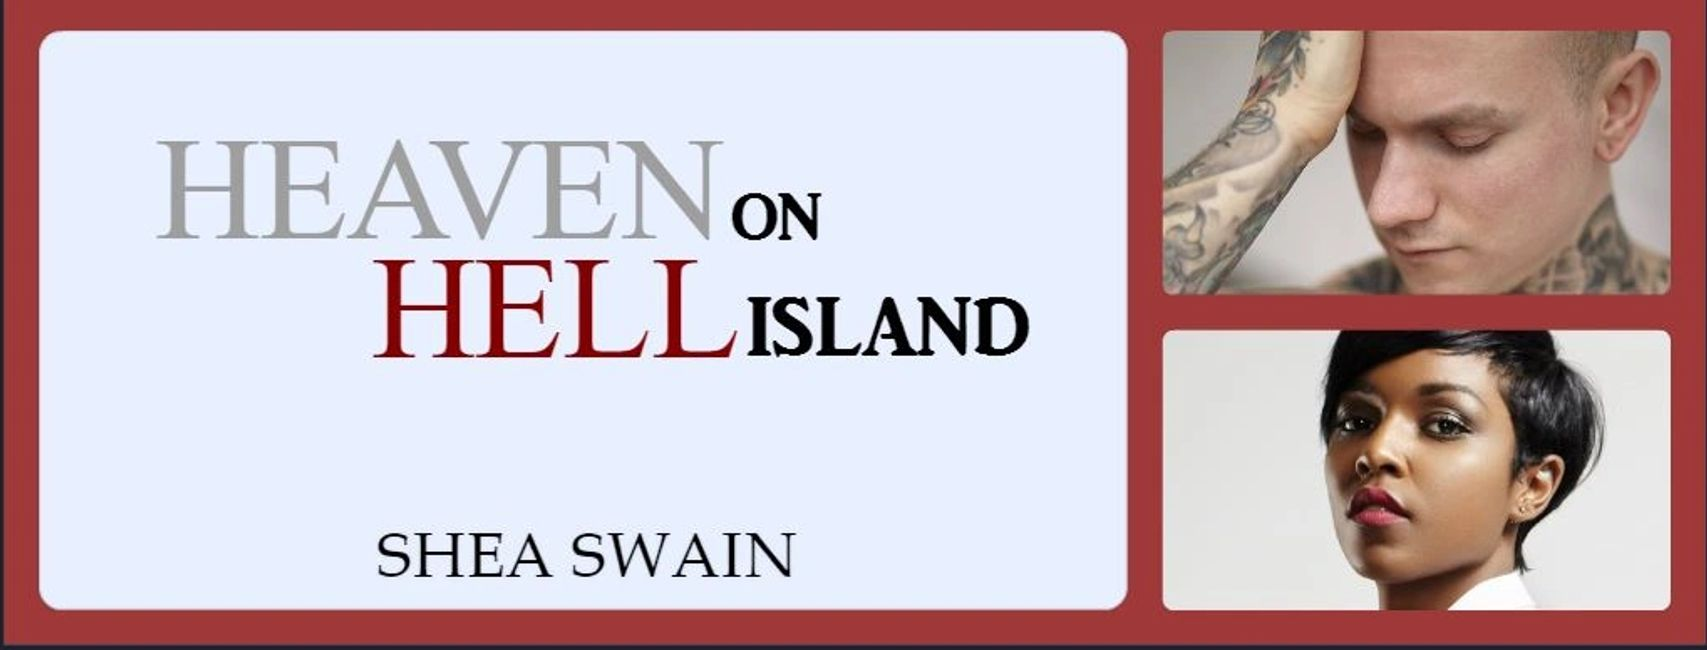 Heaven on Hell Island, an enemies to lovers romance by Shea Swain